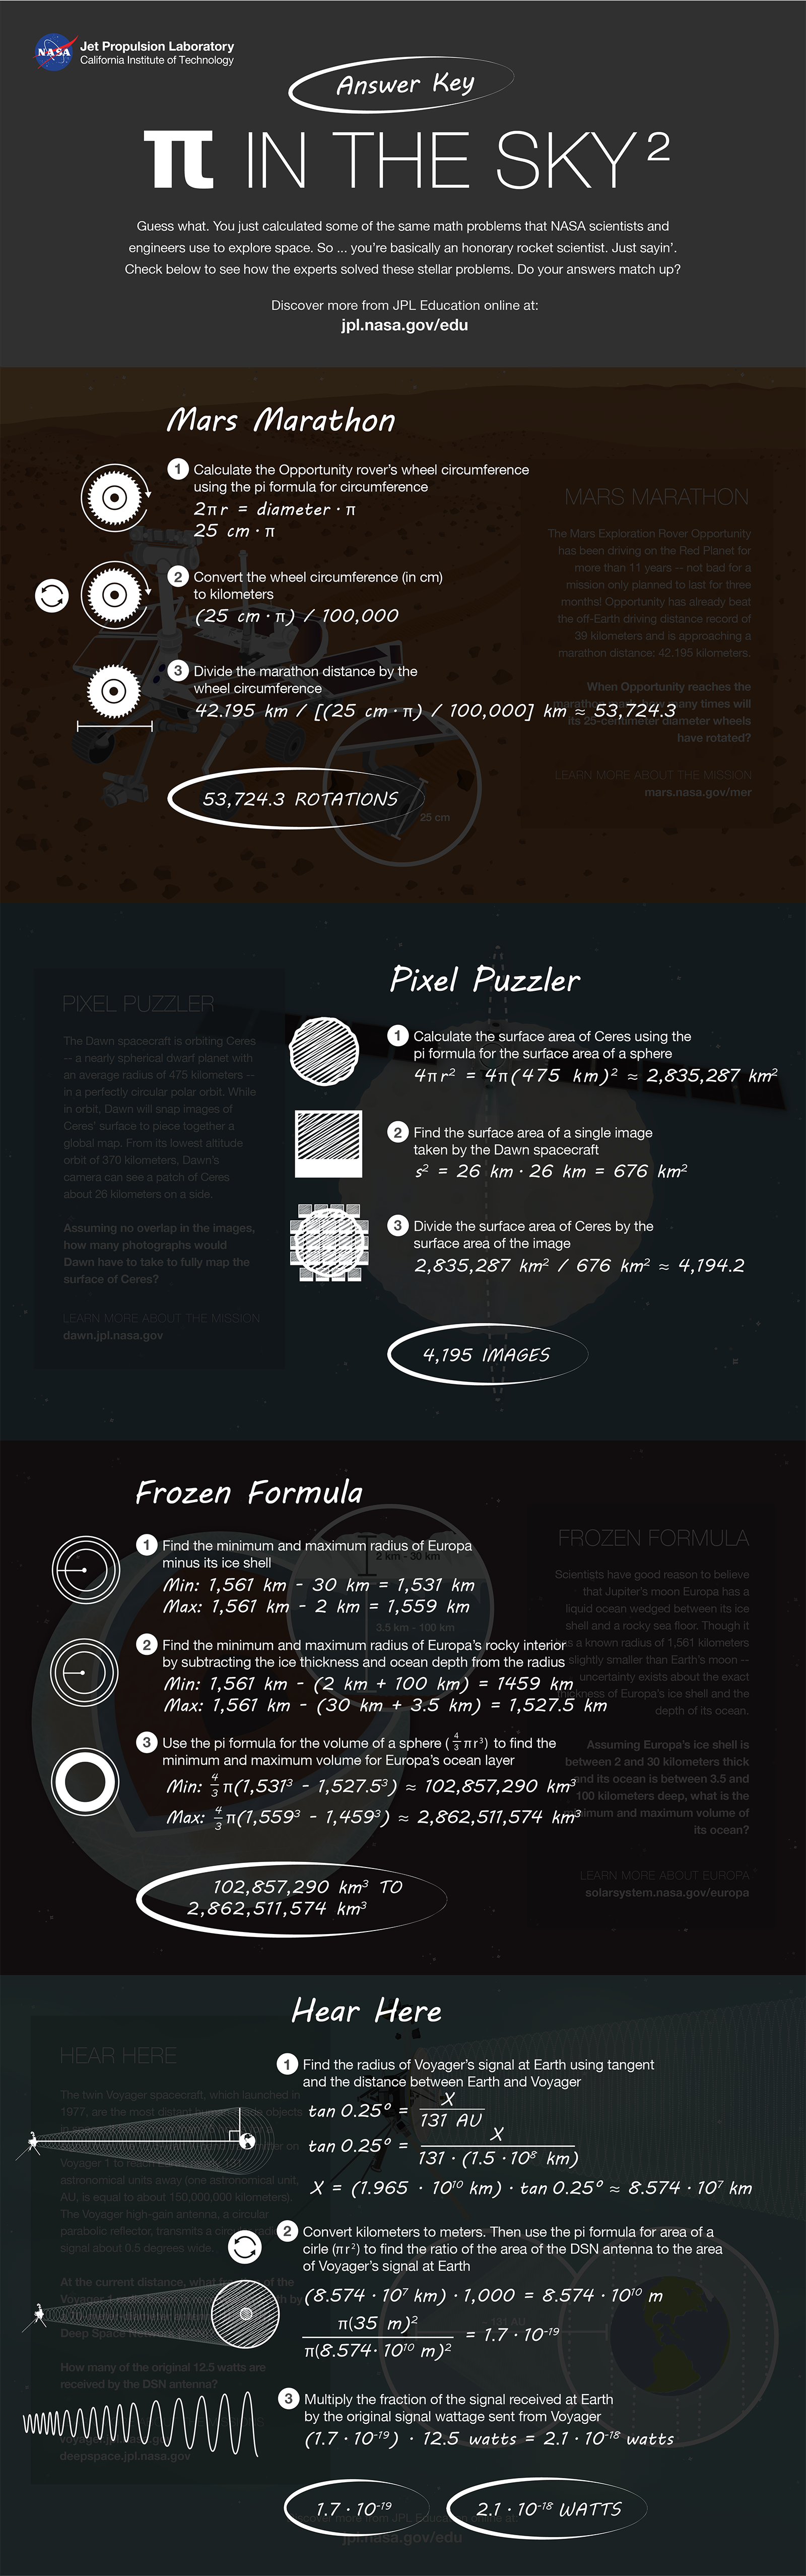 Pi in the Sky 2 Infographic Answers